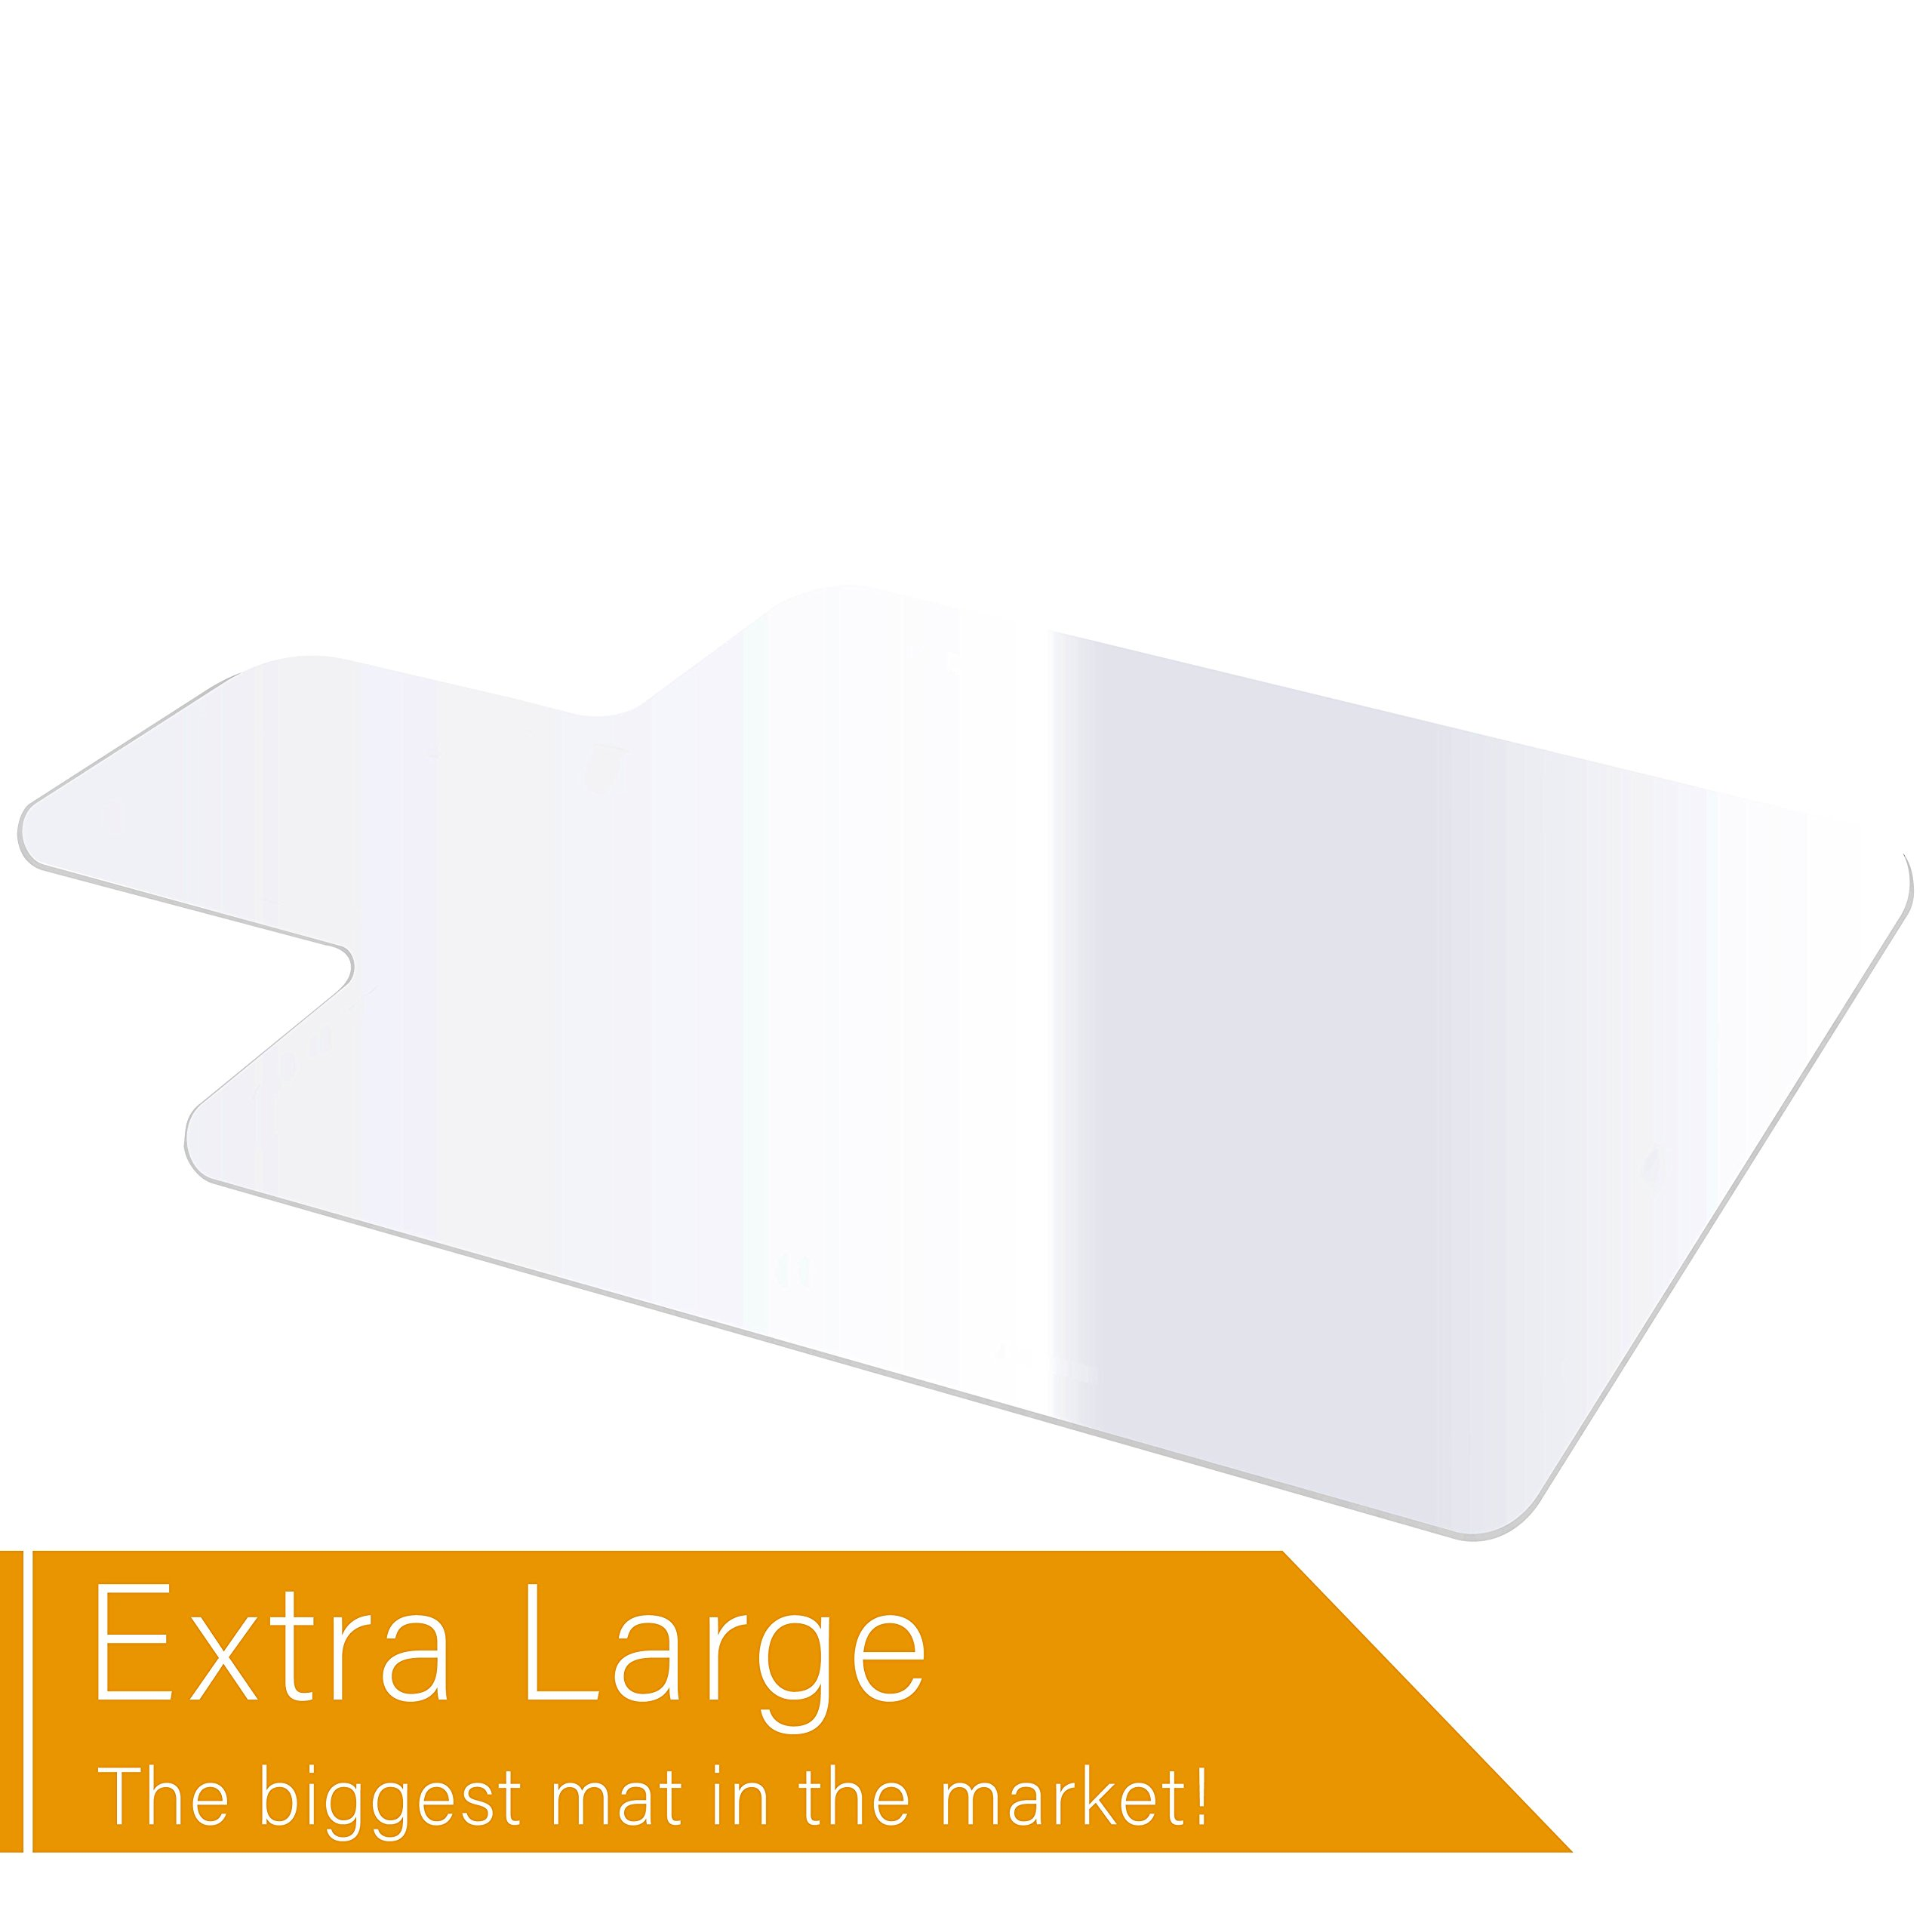 Office Chair Mat Heavy Duty for Hardwood Floor Protection Under Computer Desk Sturdy Clear Textured Top Polycarbonate Plastic Large 46'' X 60'' Shipped Rolled Up